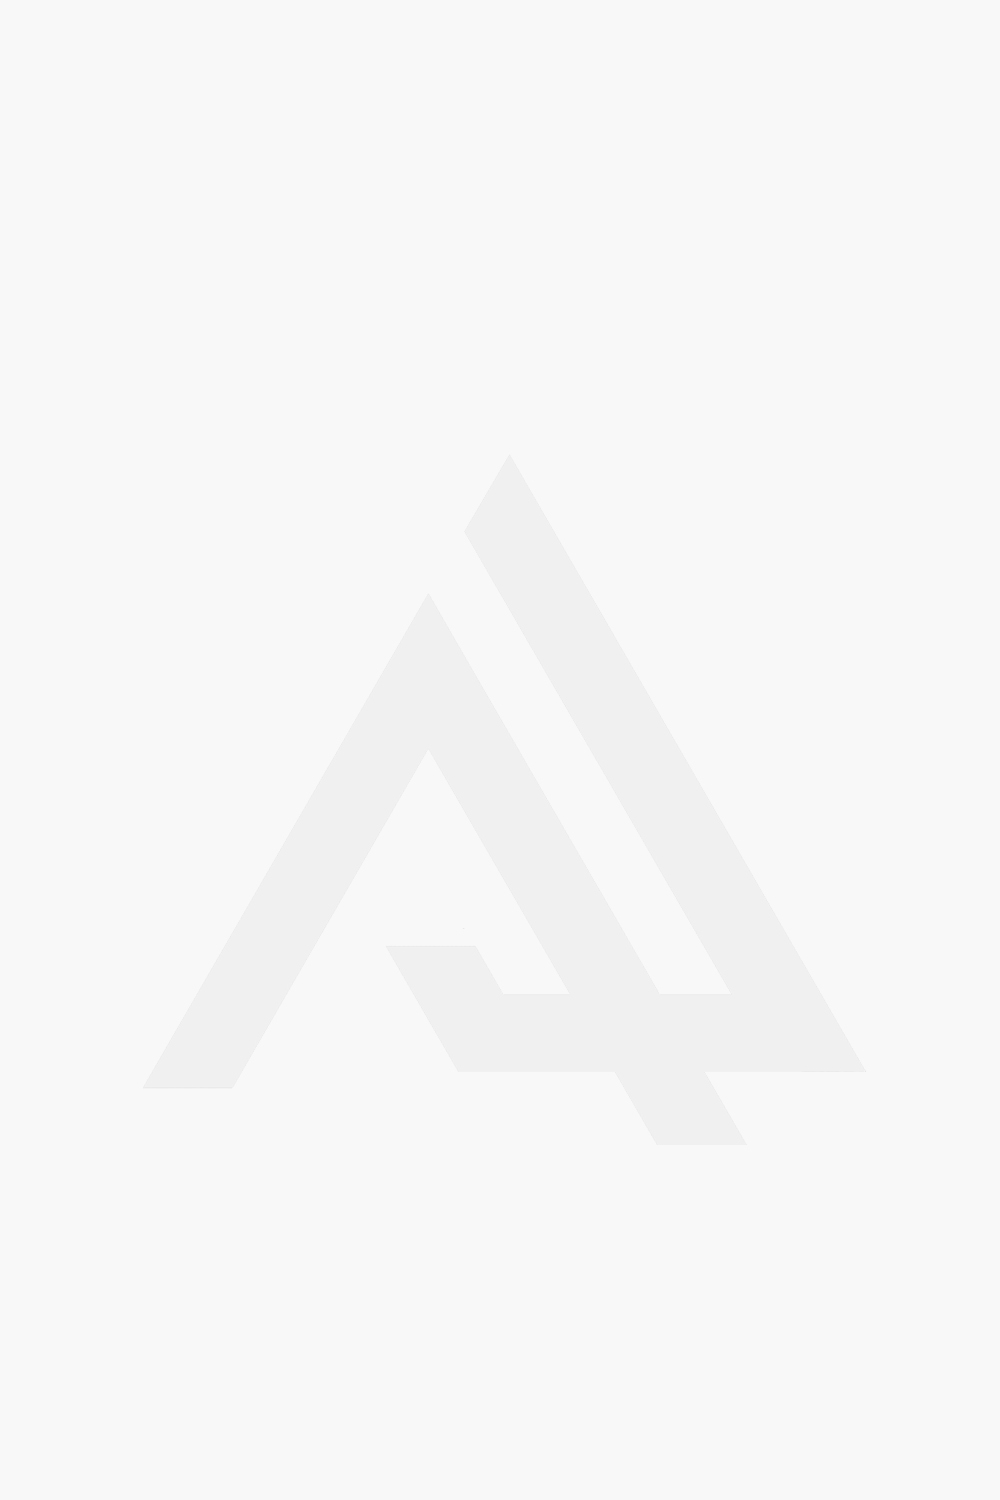 Bloom Cushion Covers, Set of 2, Black, Green & Red